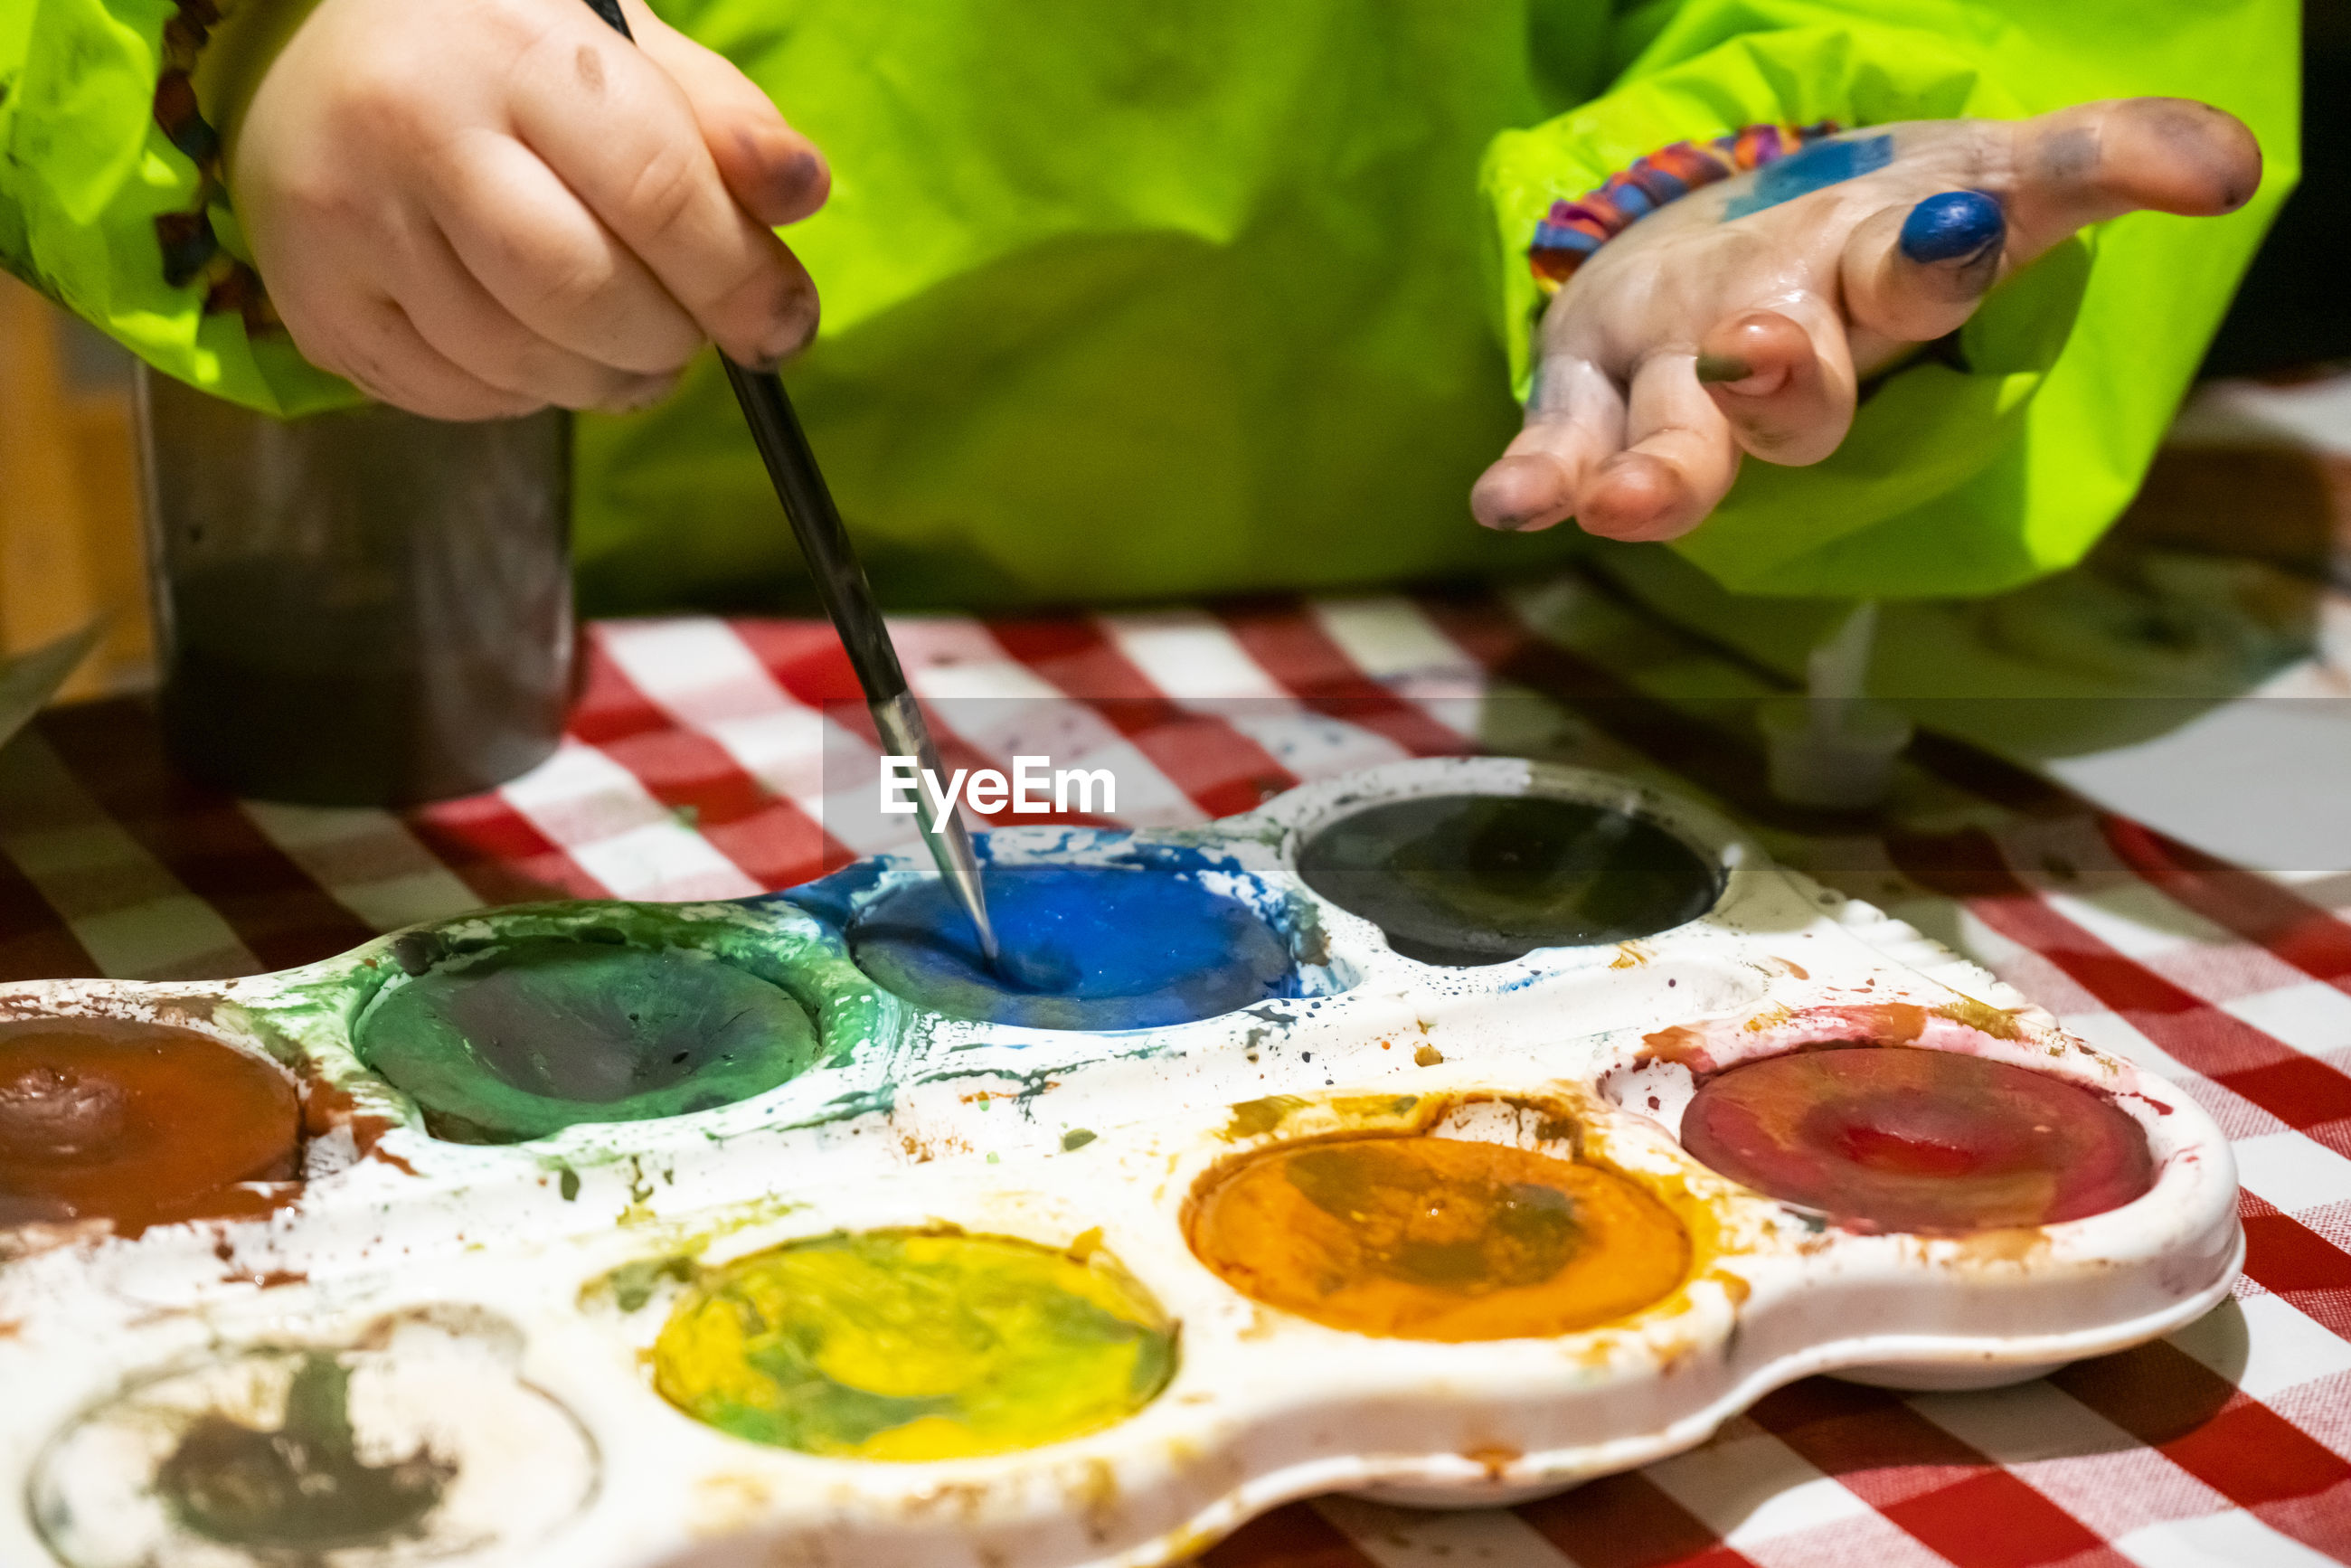 Midsection of girl holding paintbrush in paints on table